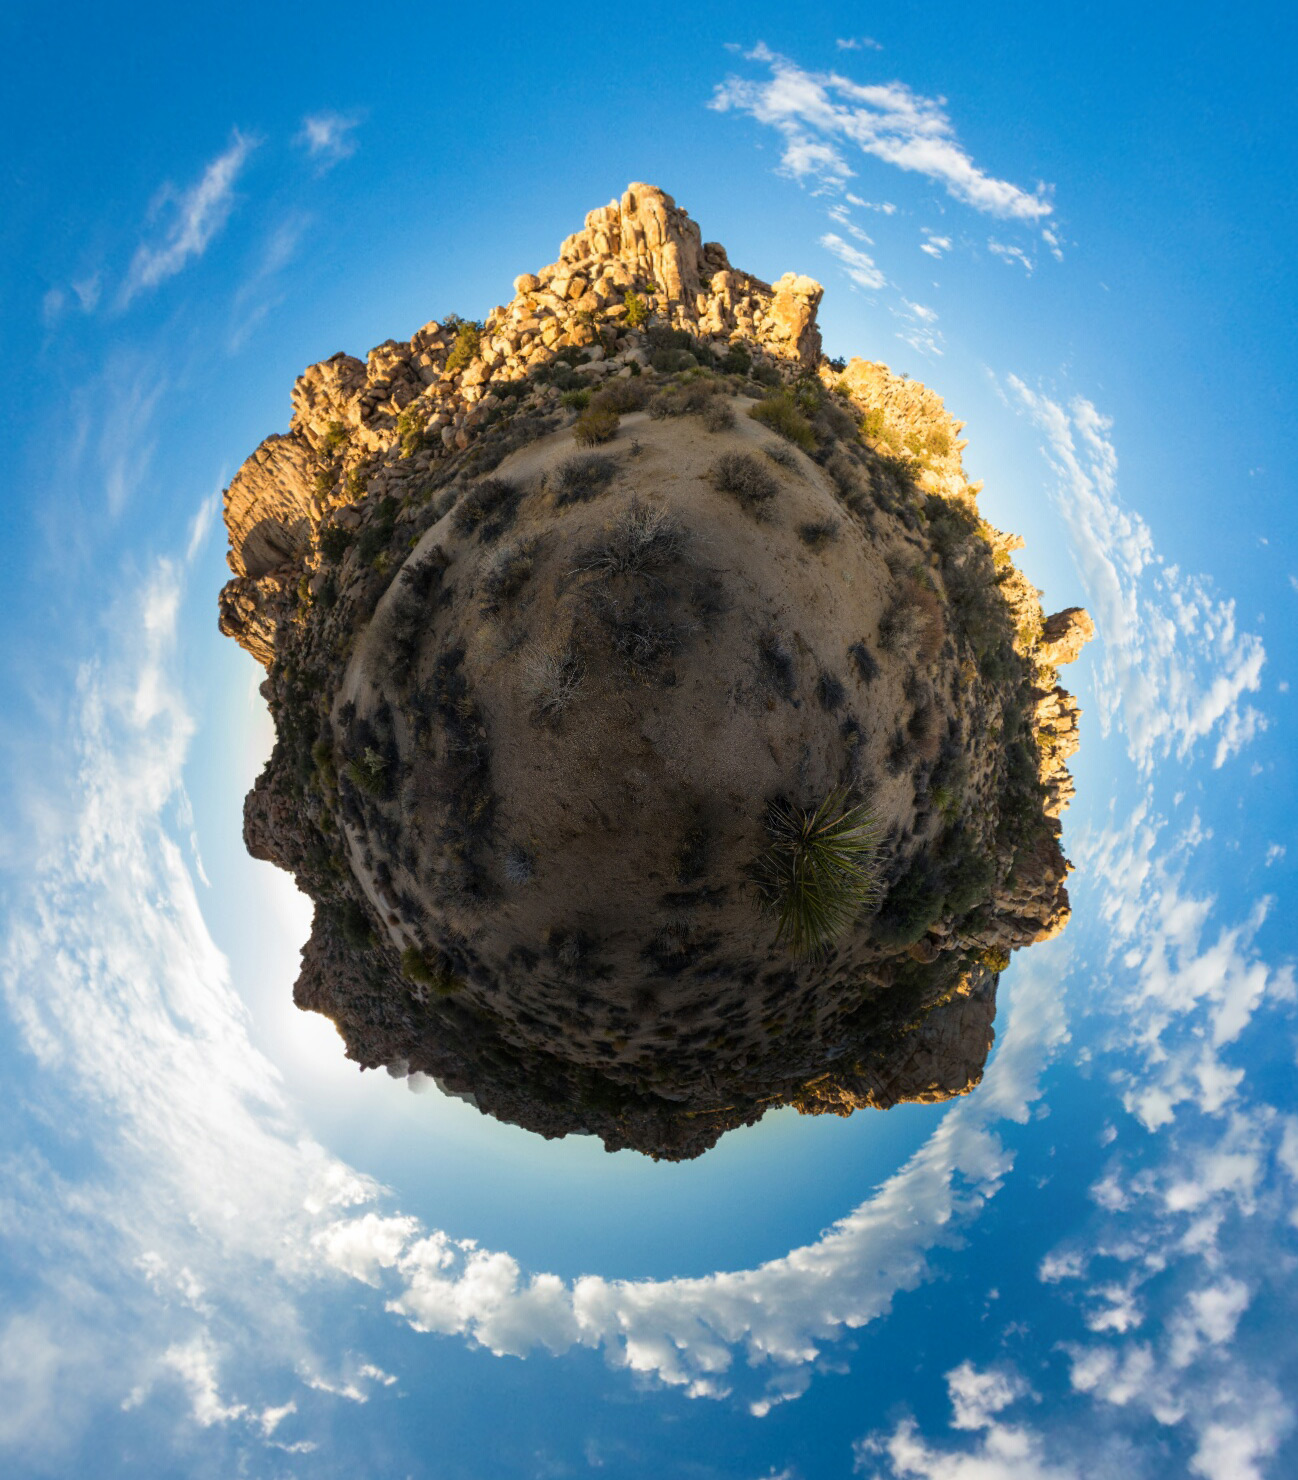 Joshua Tree tiny planet. Photo by Jim Newberry.